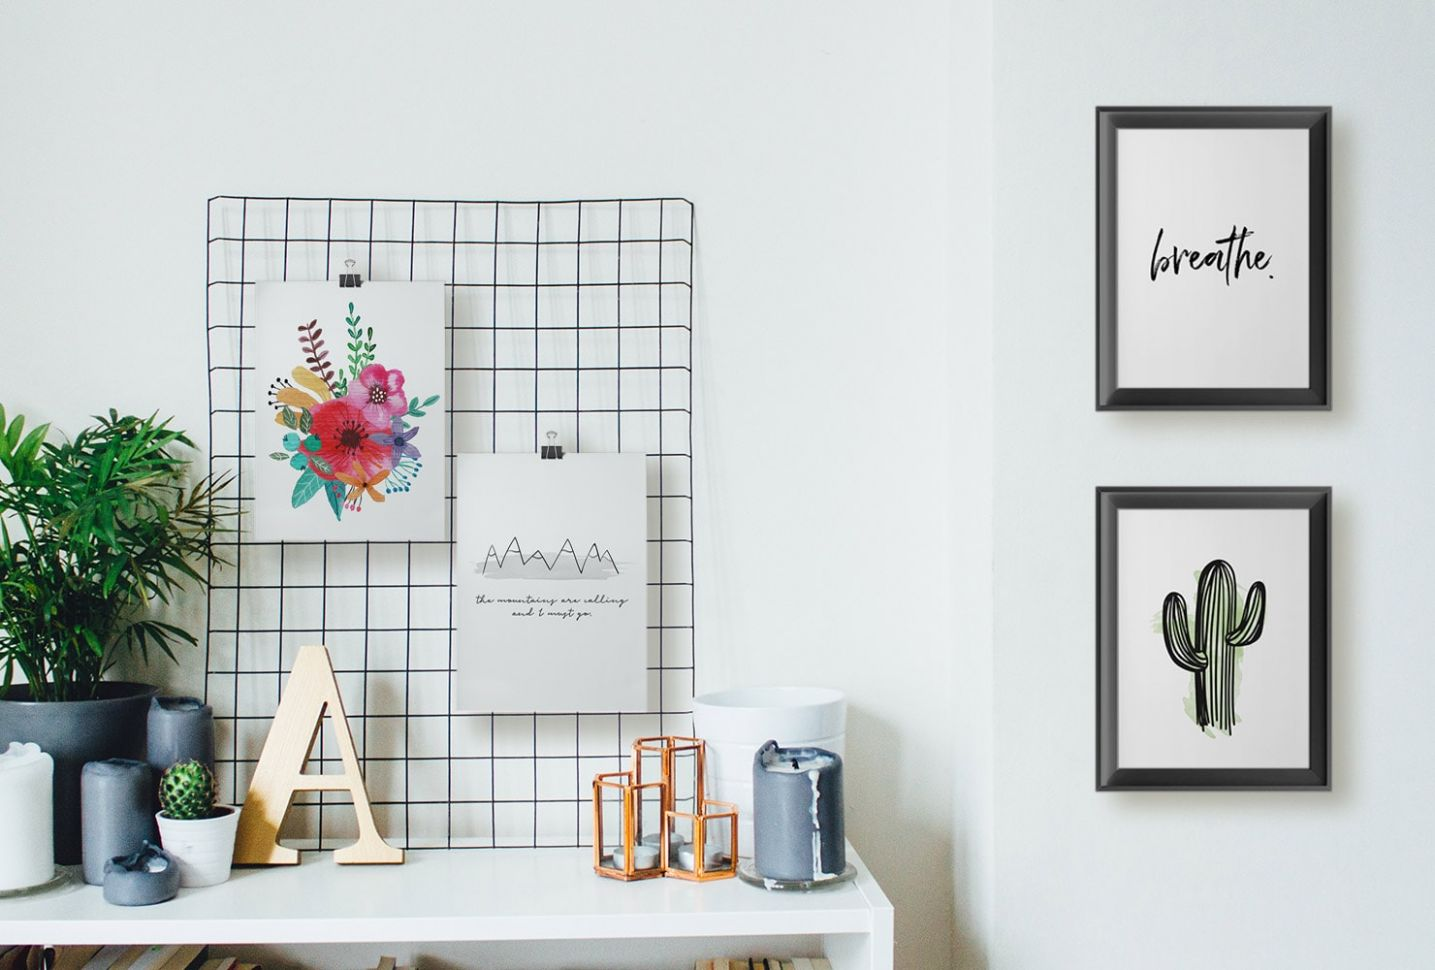 12 Unique DIY Wall Art Ideas (With Printables) | Shutterfly